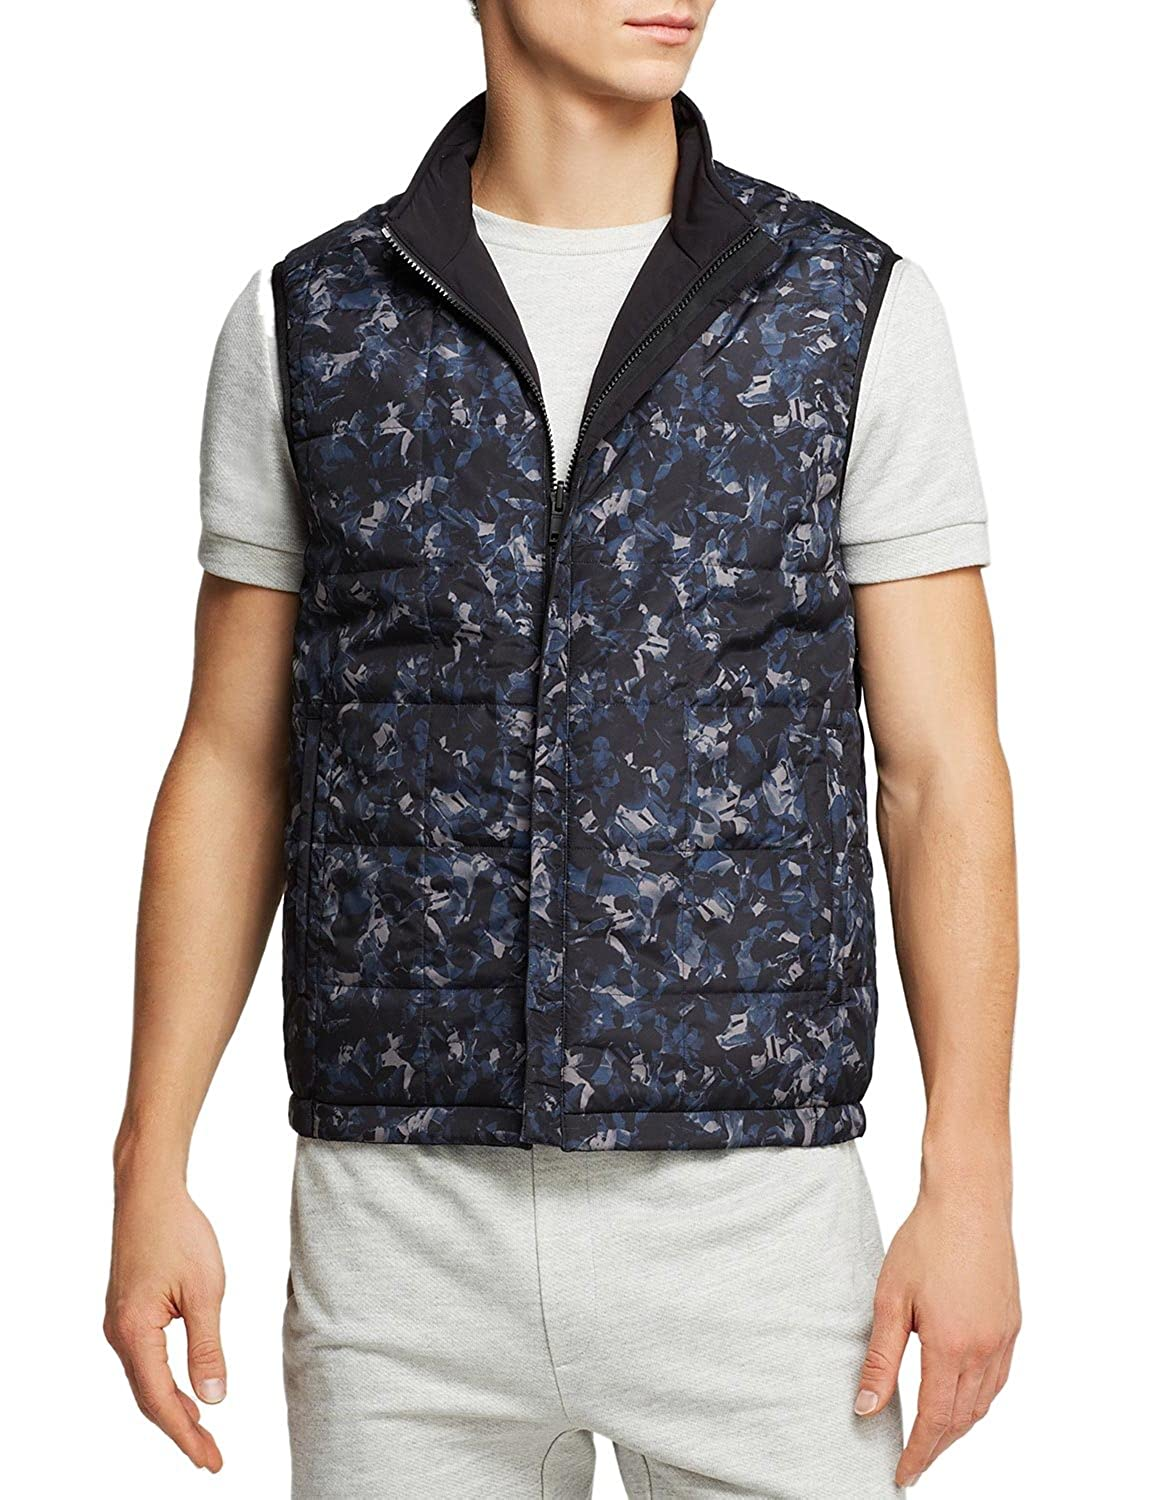 NEW $345 THEORY REVERSIBLE BLACK /CAMO TURCO BQ_BEVAN NYLON JACKET VEST